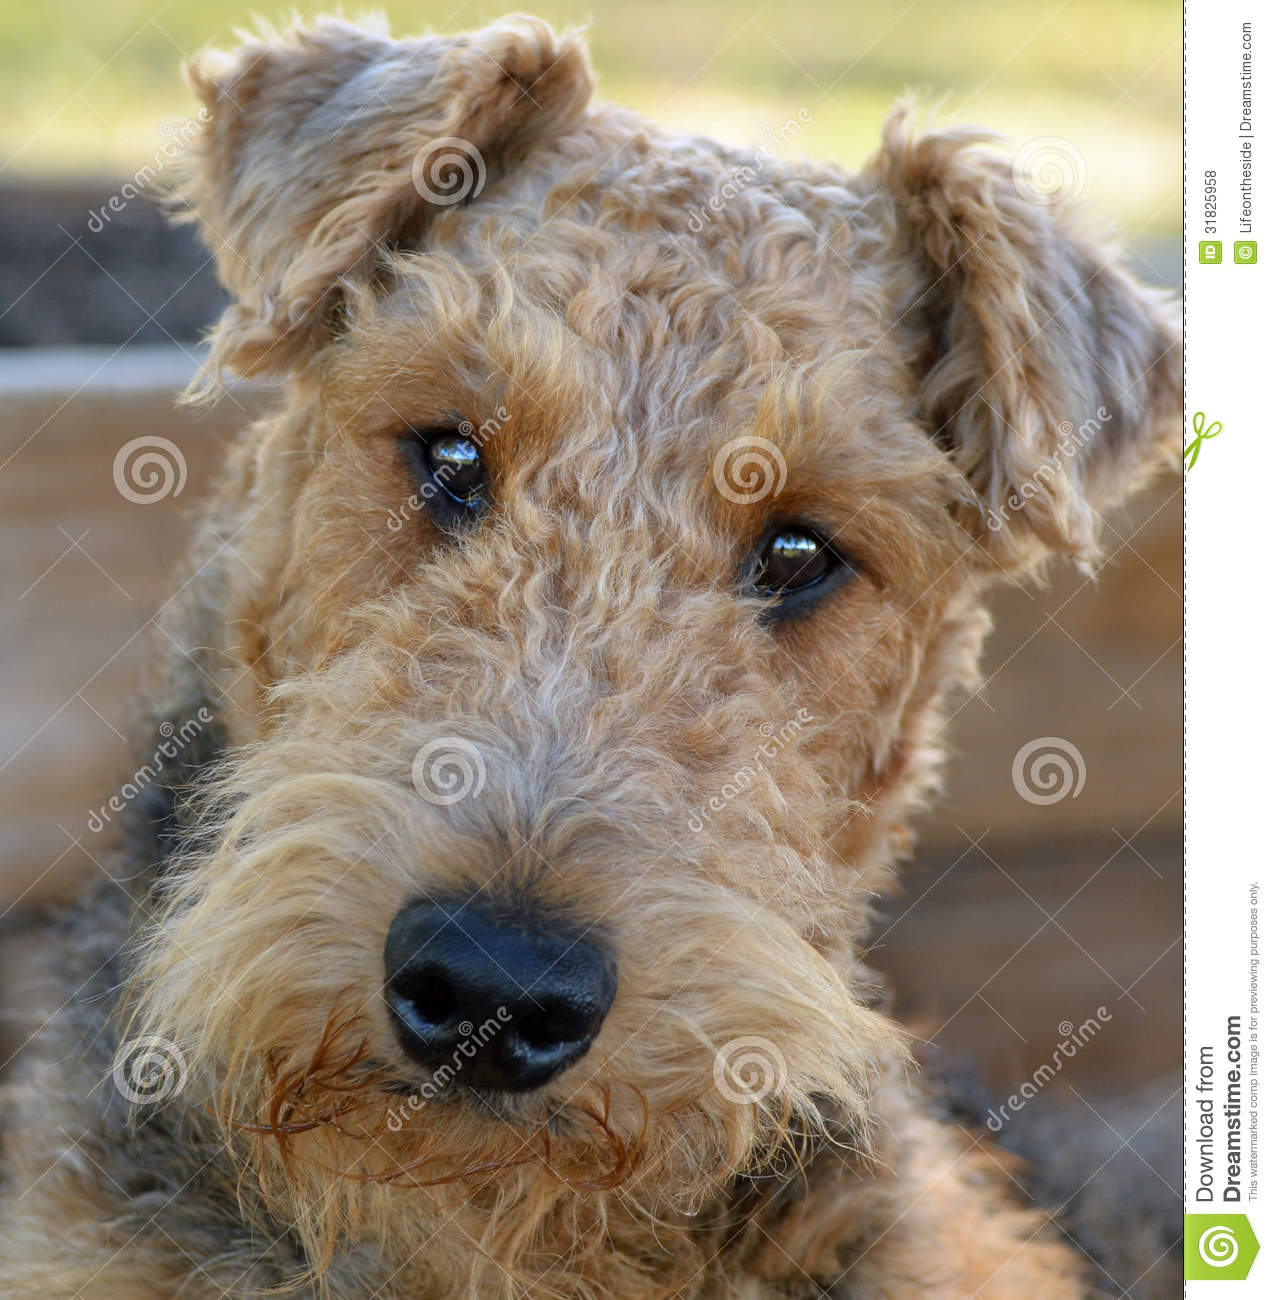 Close Up Portrait Of Adorable Airedale Terrier Dog Royalty Free Stock ...